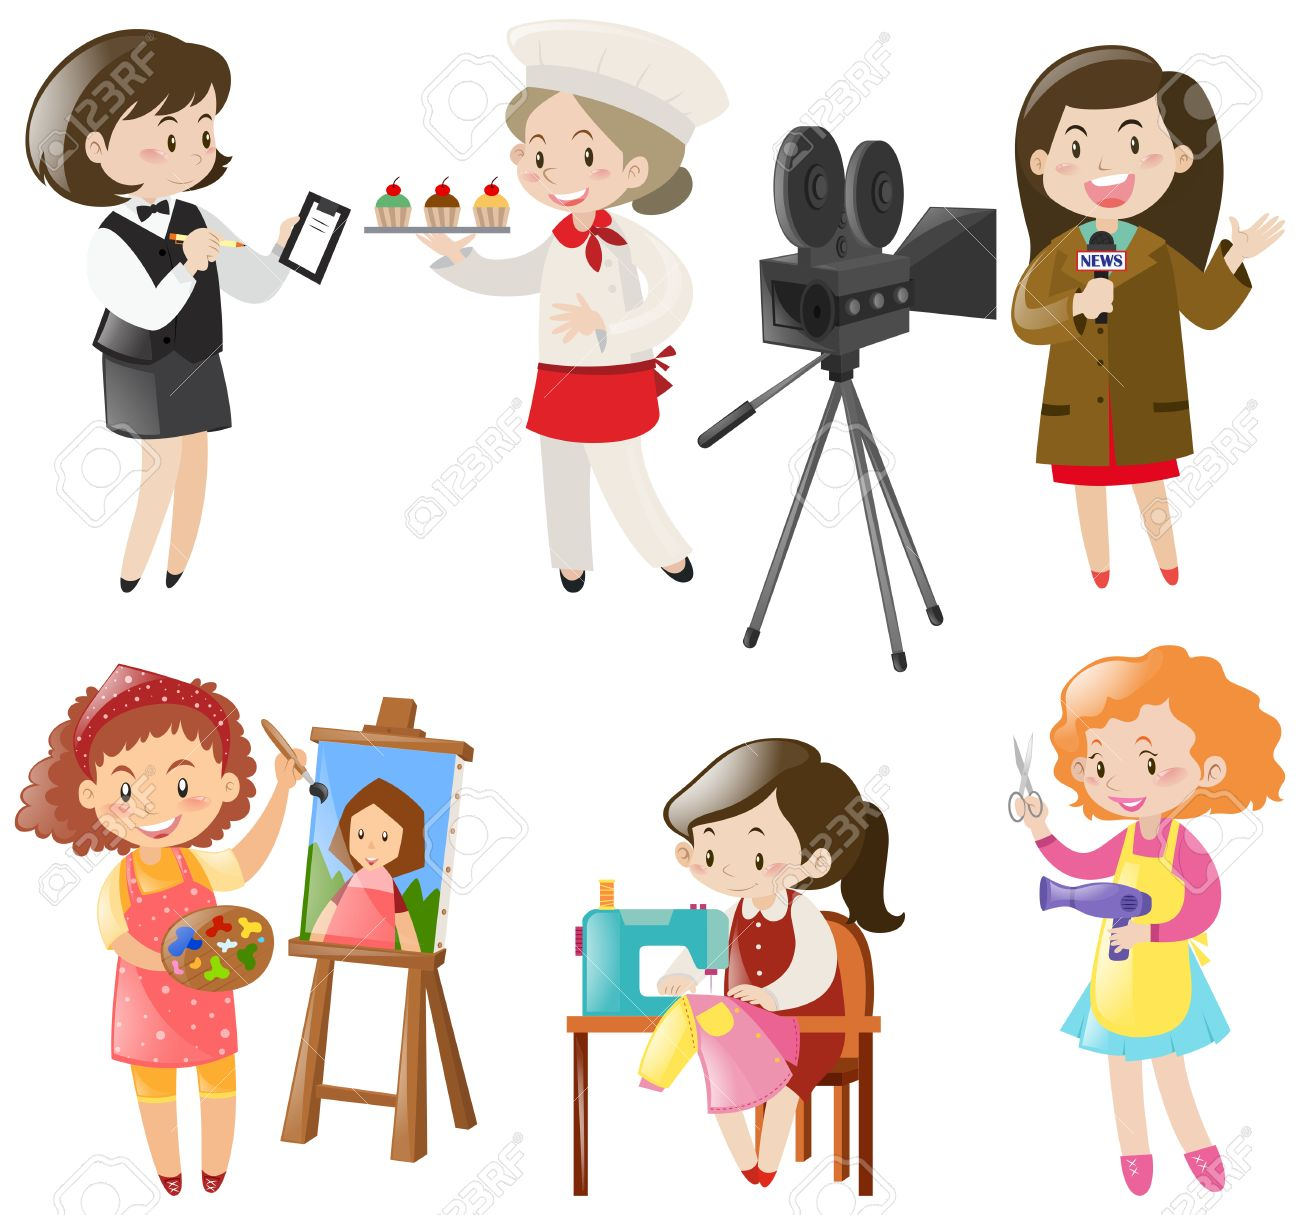 women doing different kinds of jobs illustration royalty free rh 123rf com jobs clipart black and white jobs clip art free